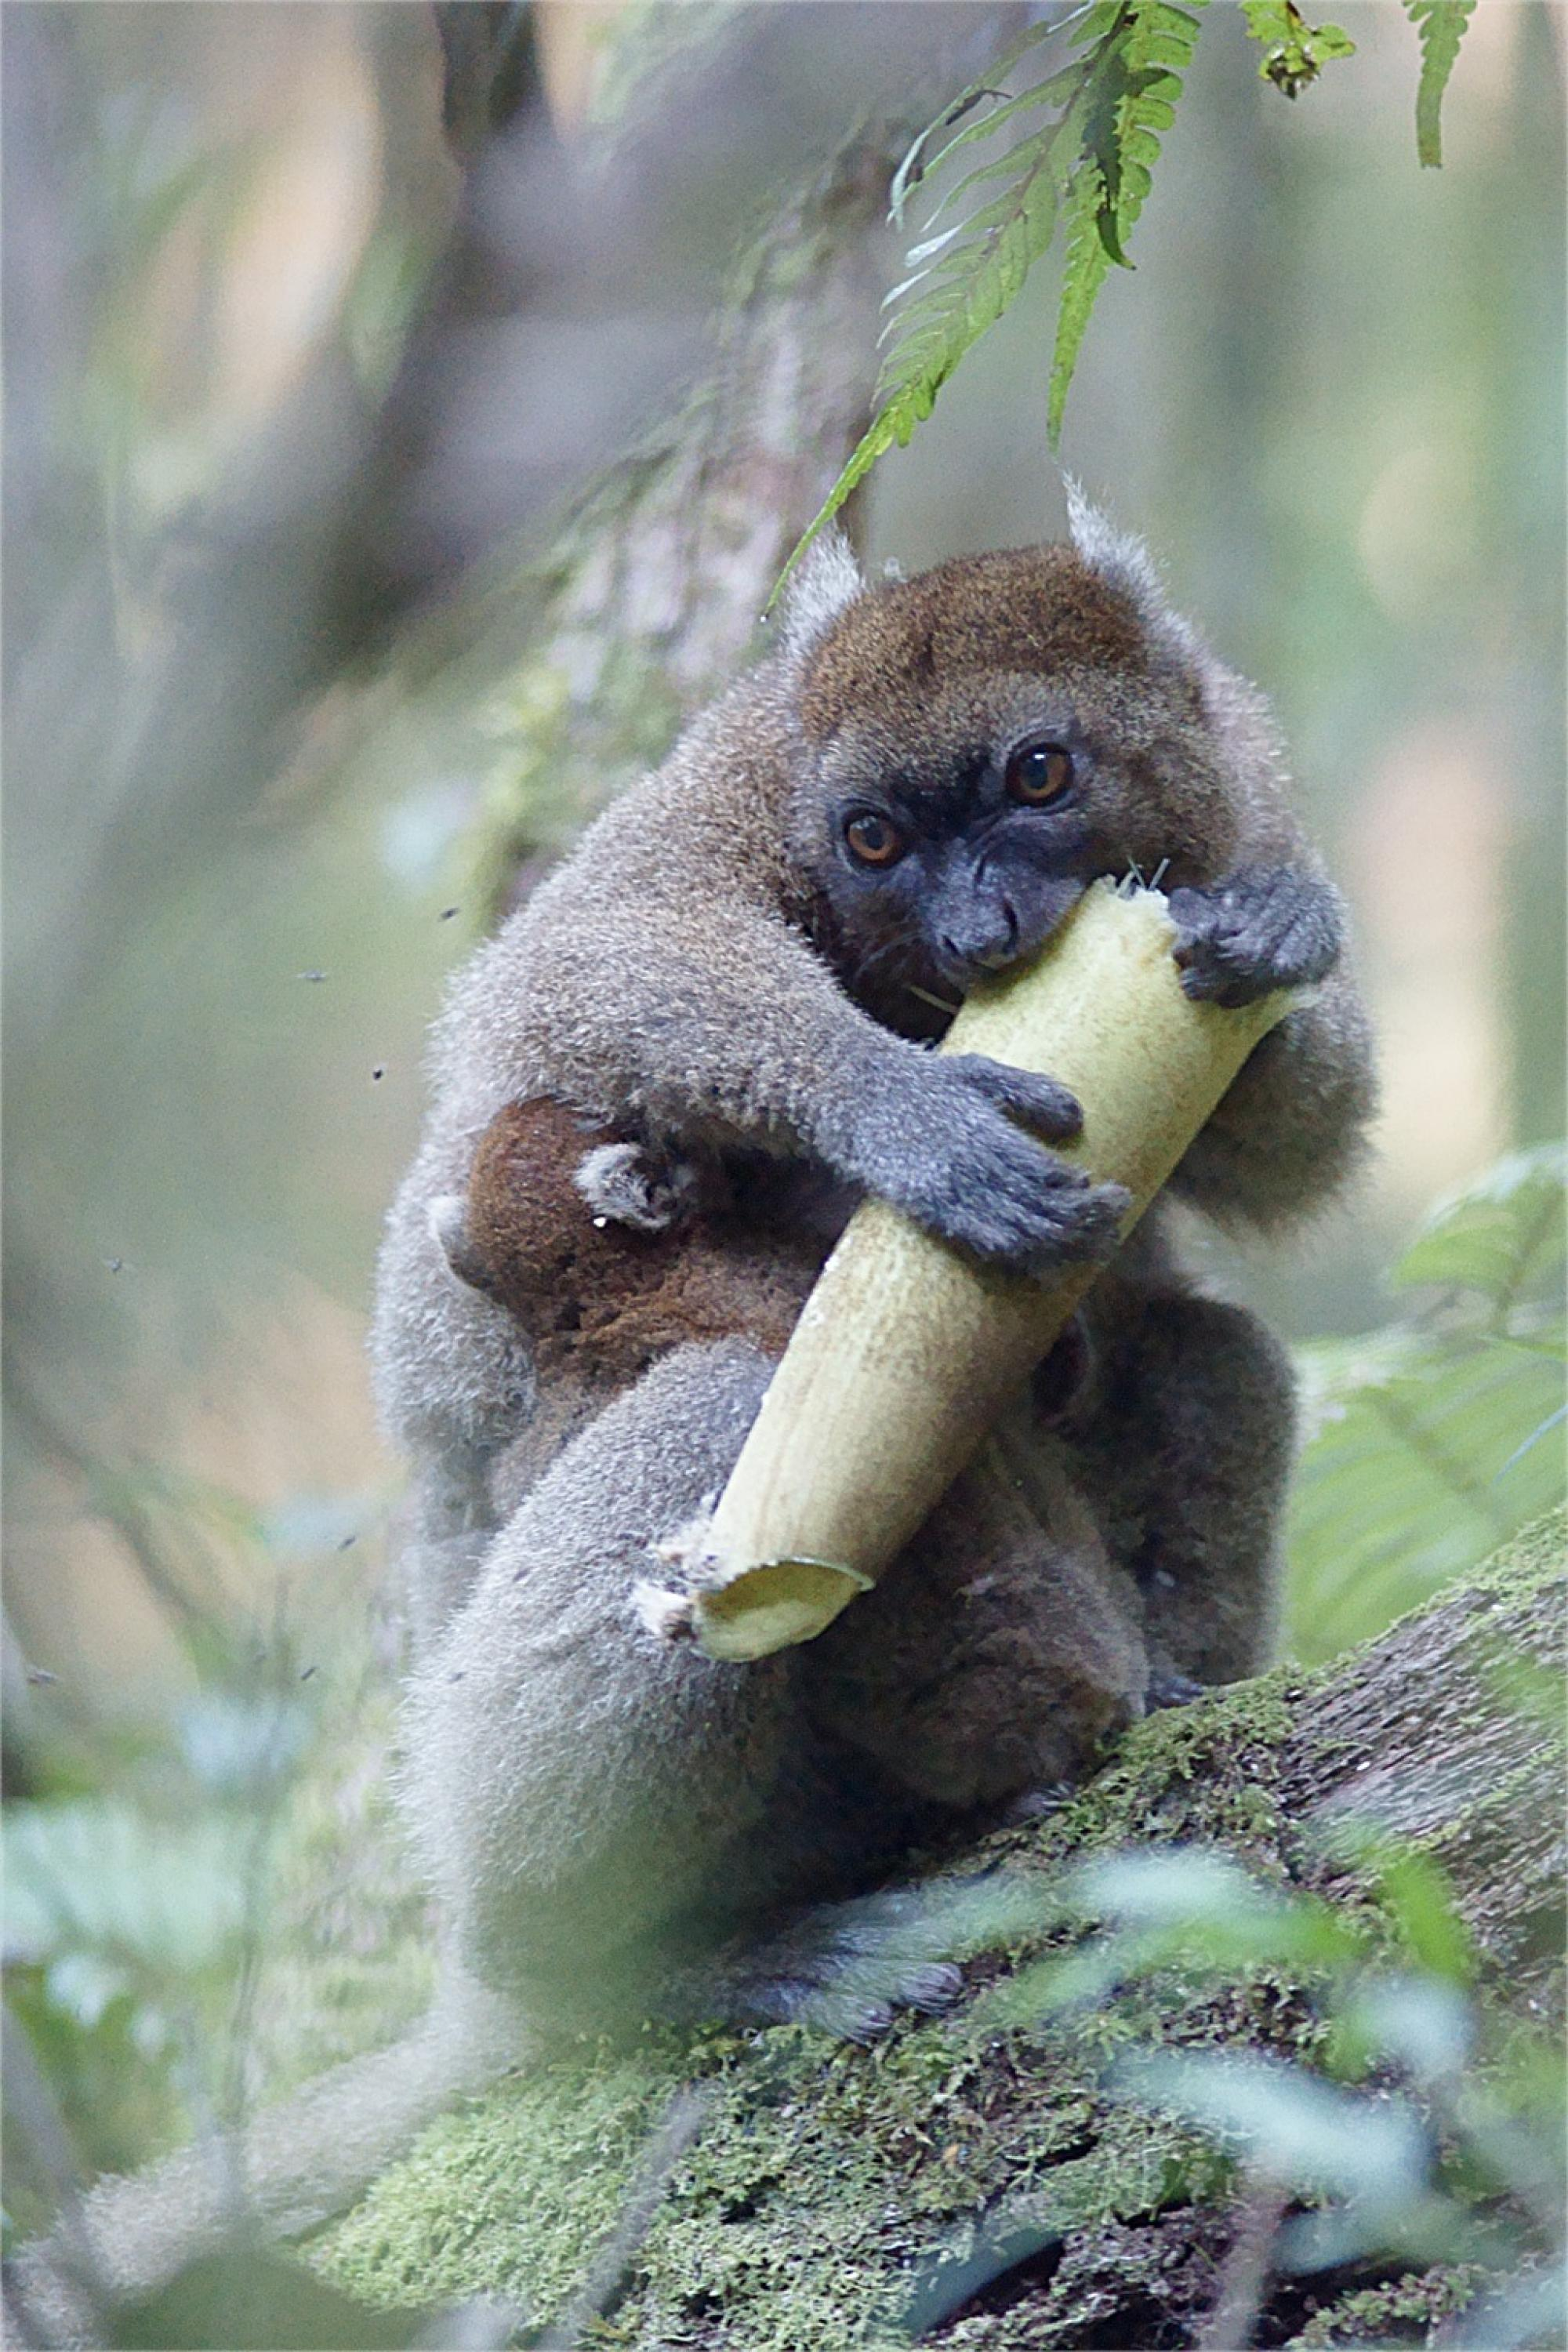 The lemurs are being forced to rely on bamboo culm, a suboptimal part of their diet, for longer periods of the year.